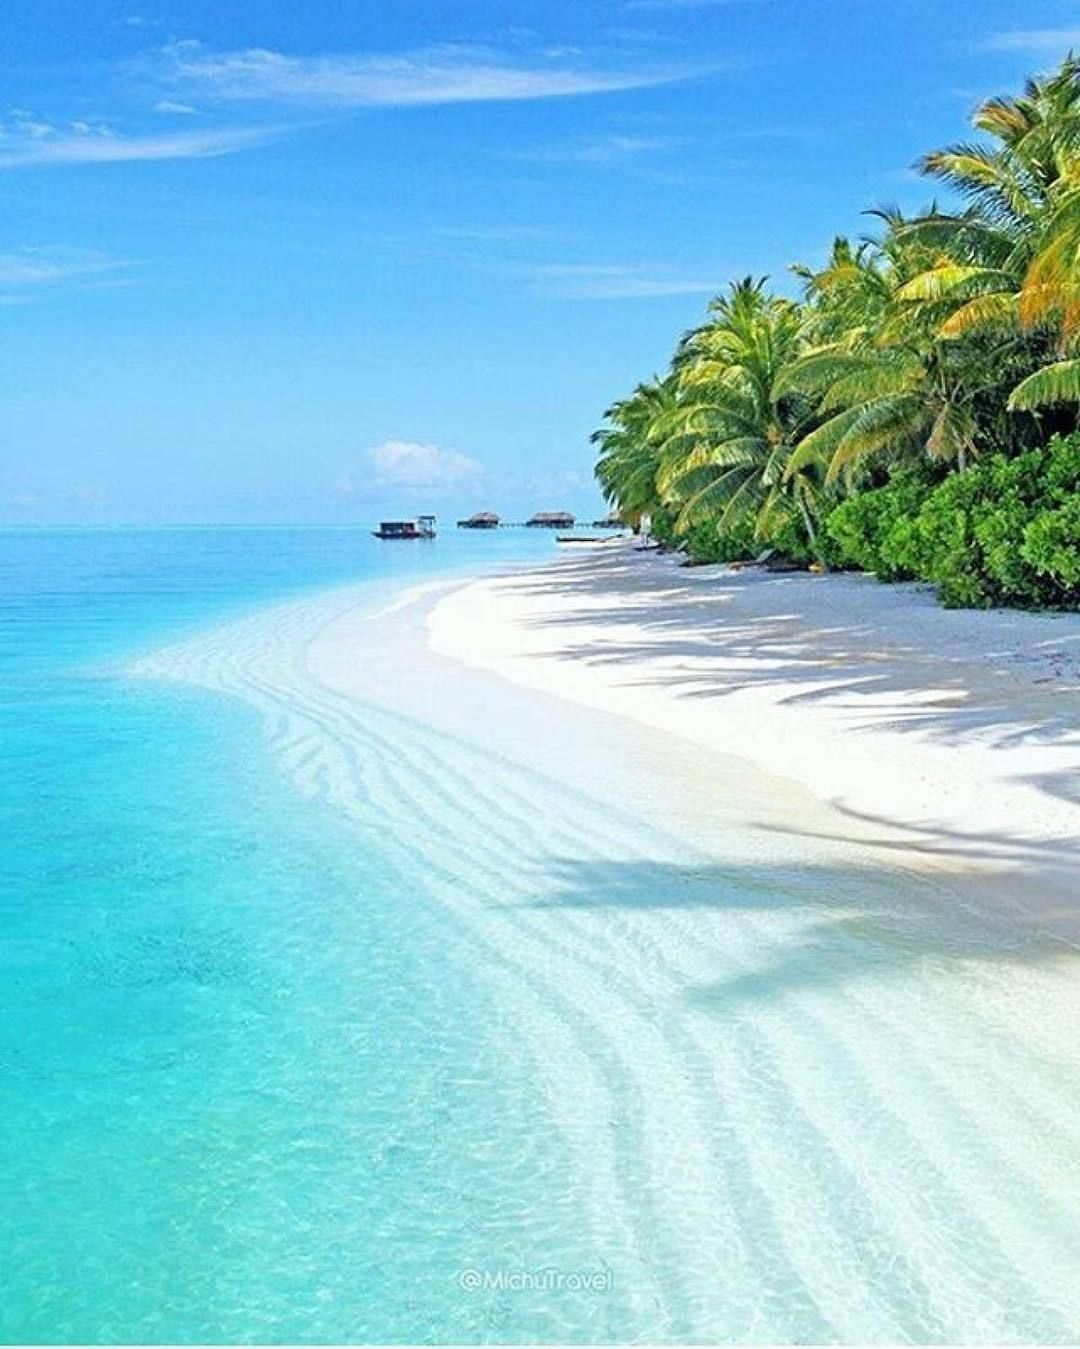 20 Most Beautiful Islands in the World is part of Beautiful beaches, Beautiful islands, Dream vacations, Vacation spots, Beaches in the world, Nature - 20 most beautiful islands in the world  From French Polynesia to the Caribbean, here are the best islands in the world to visit